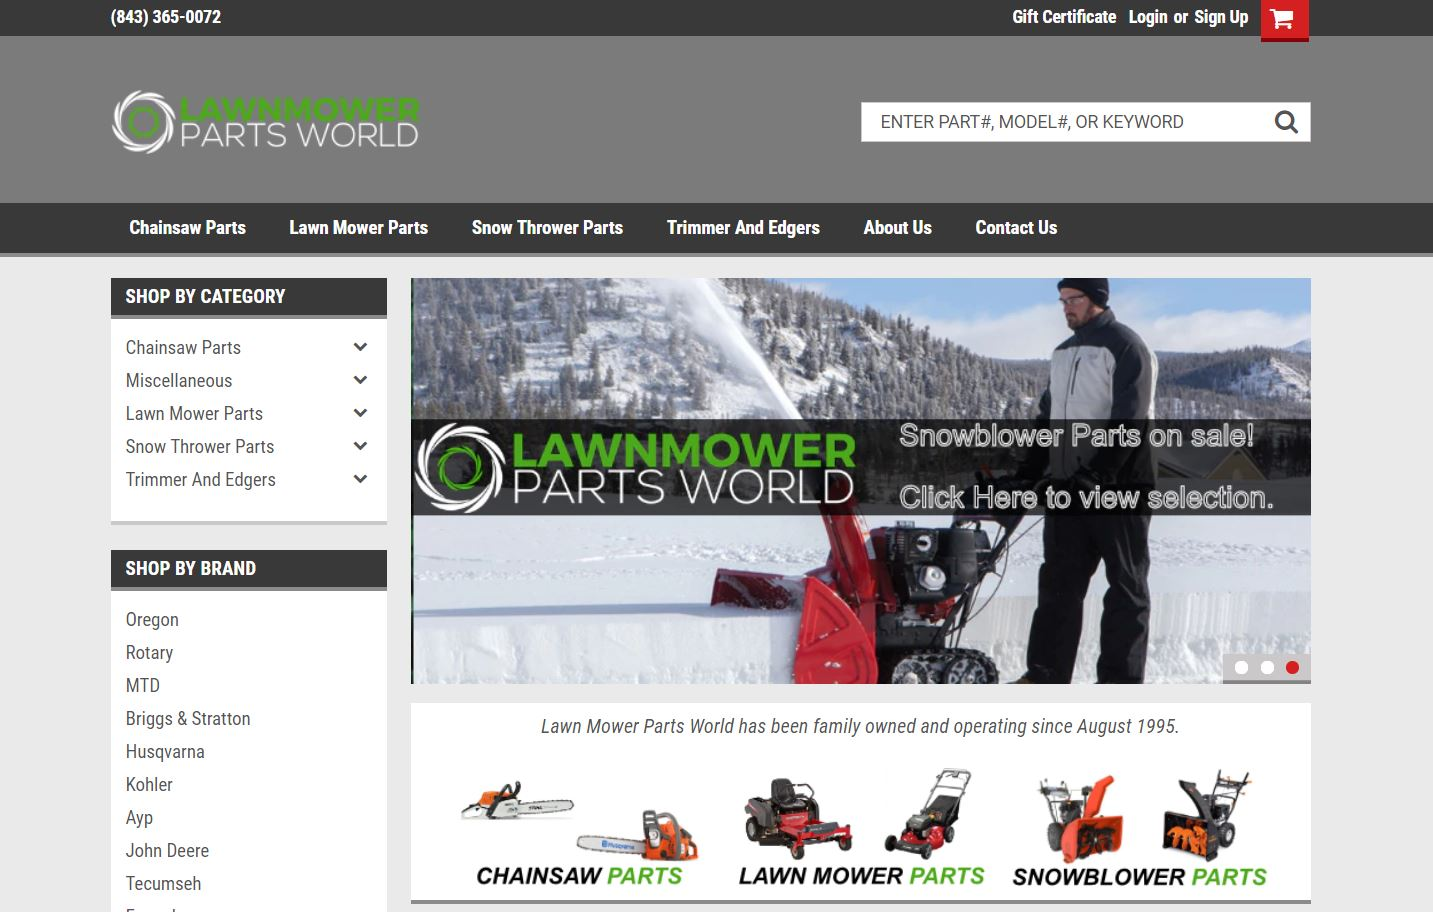 Lawn Mower Parts World